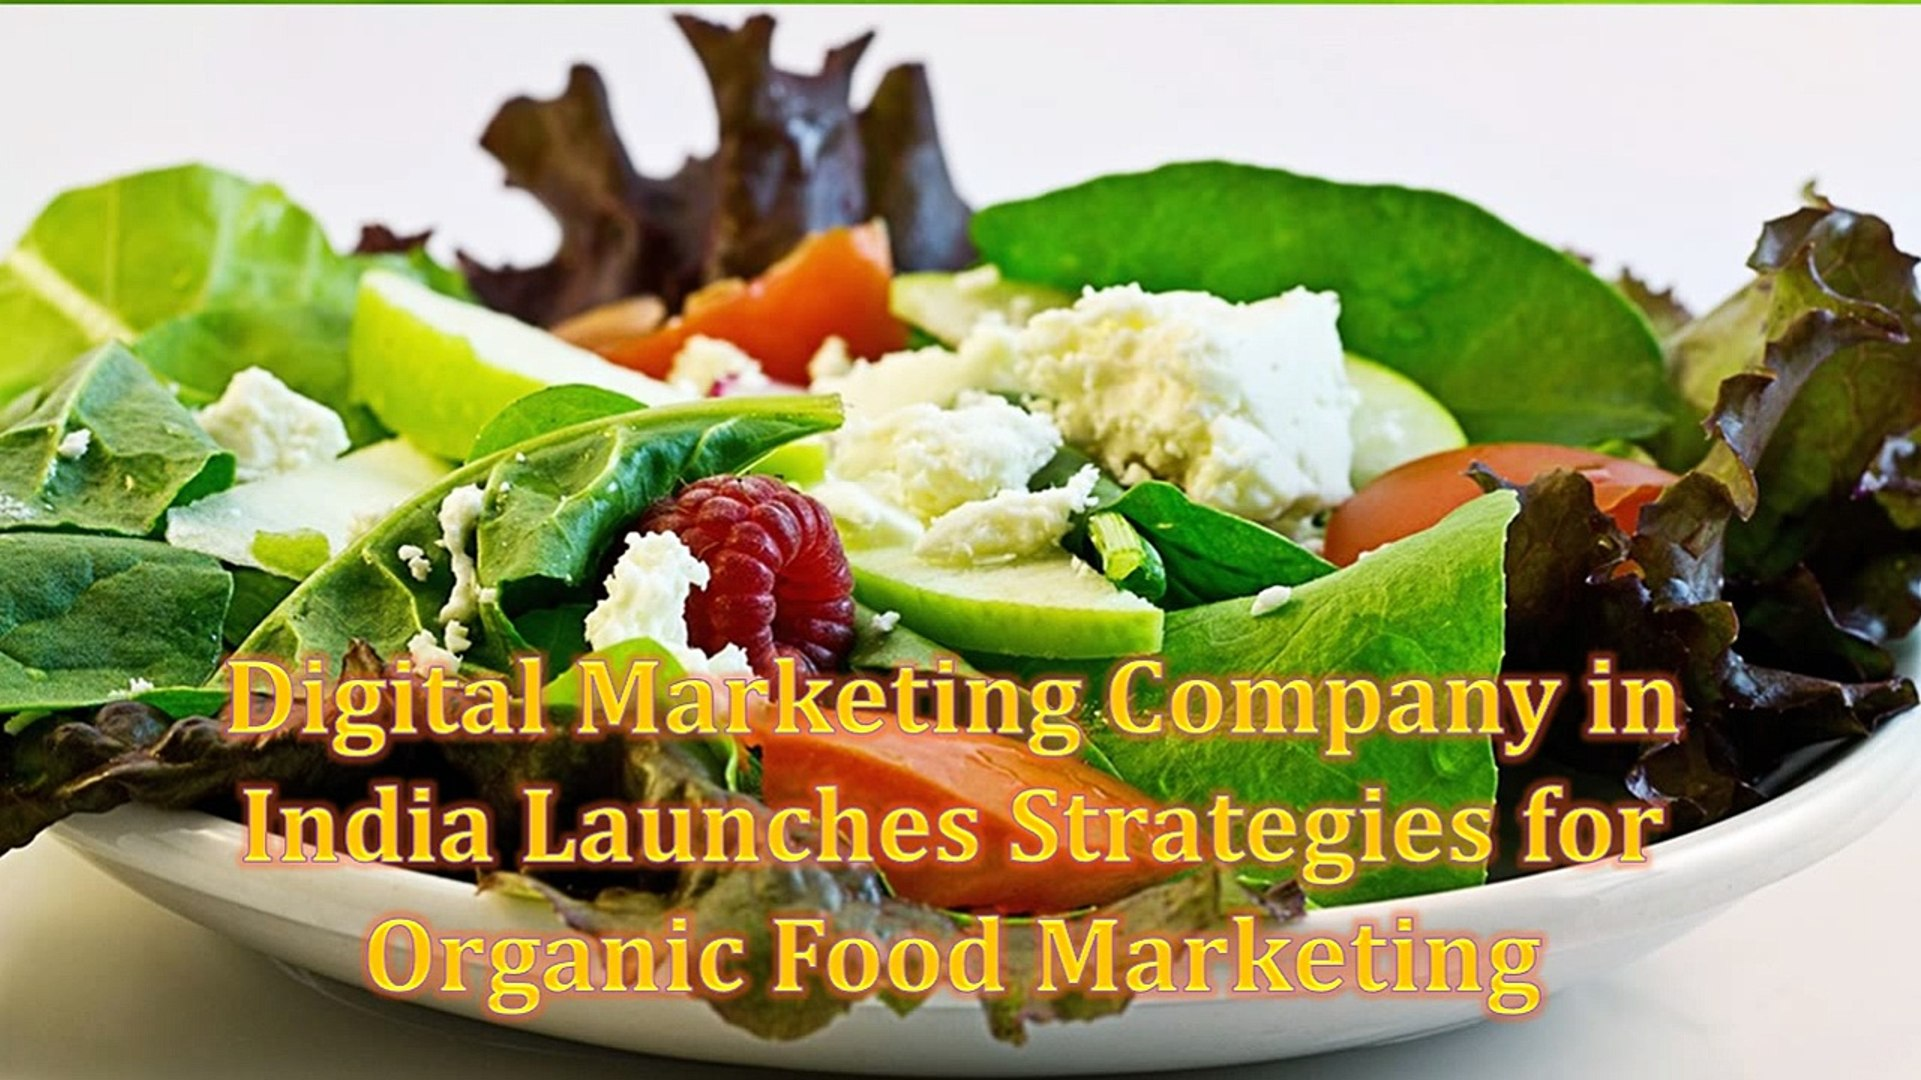 Digital Marketing Company in India Launches Strategies for Organic Food  Marketing